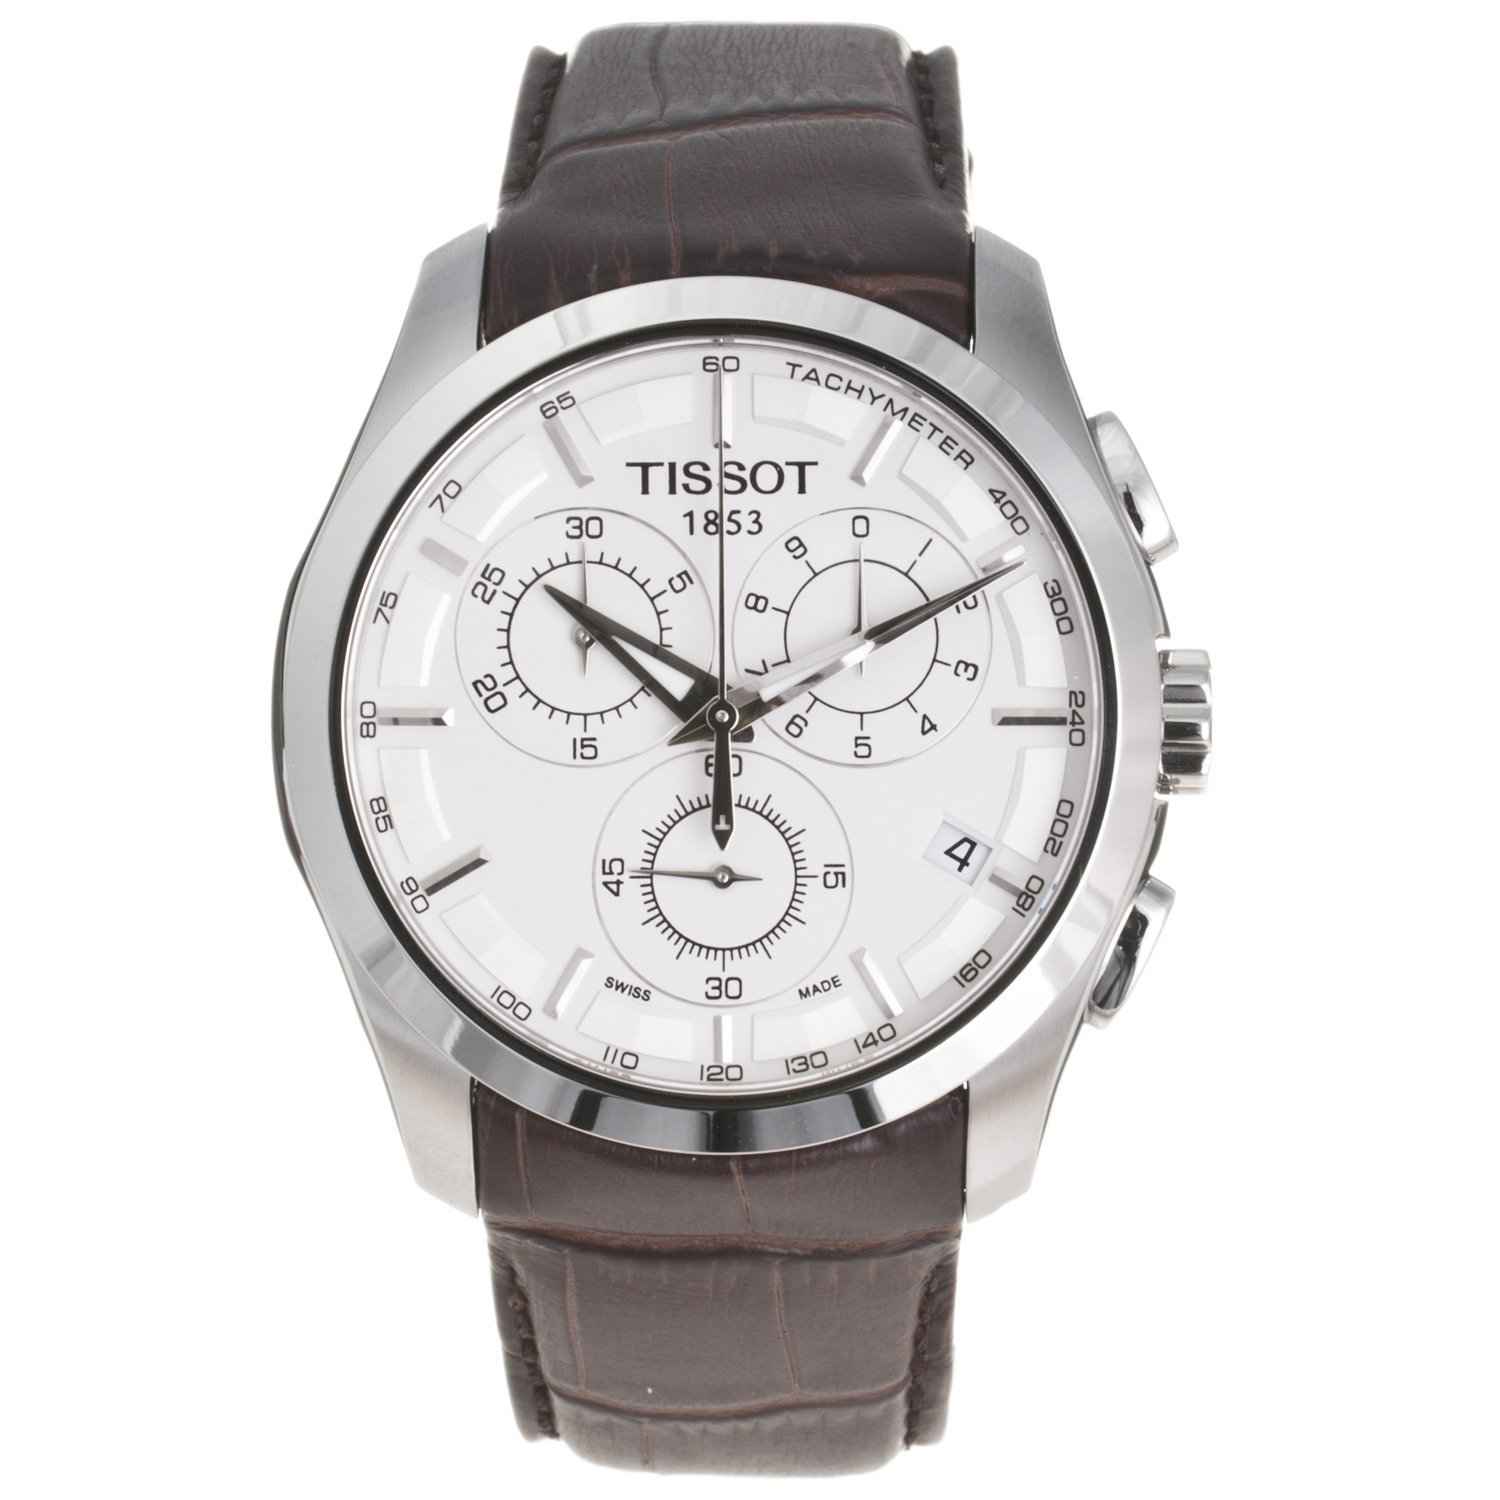 Tissot Men's Couturier Watch T0356171603100 Leather Chrono